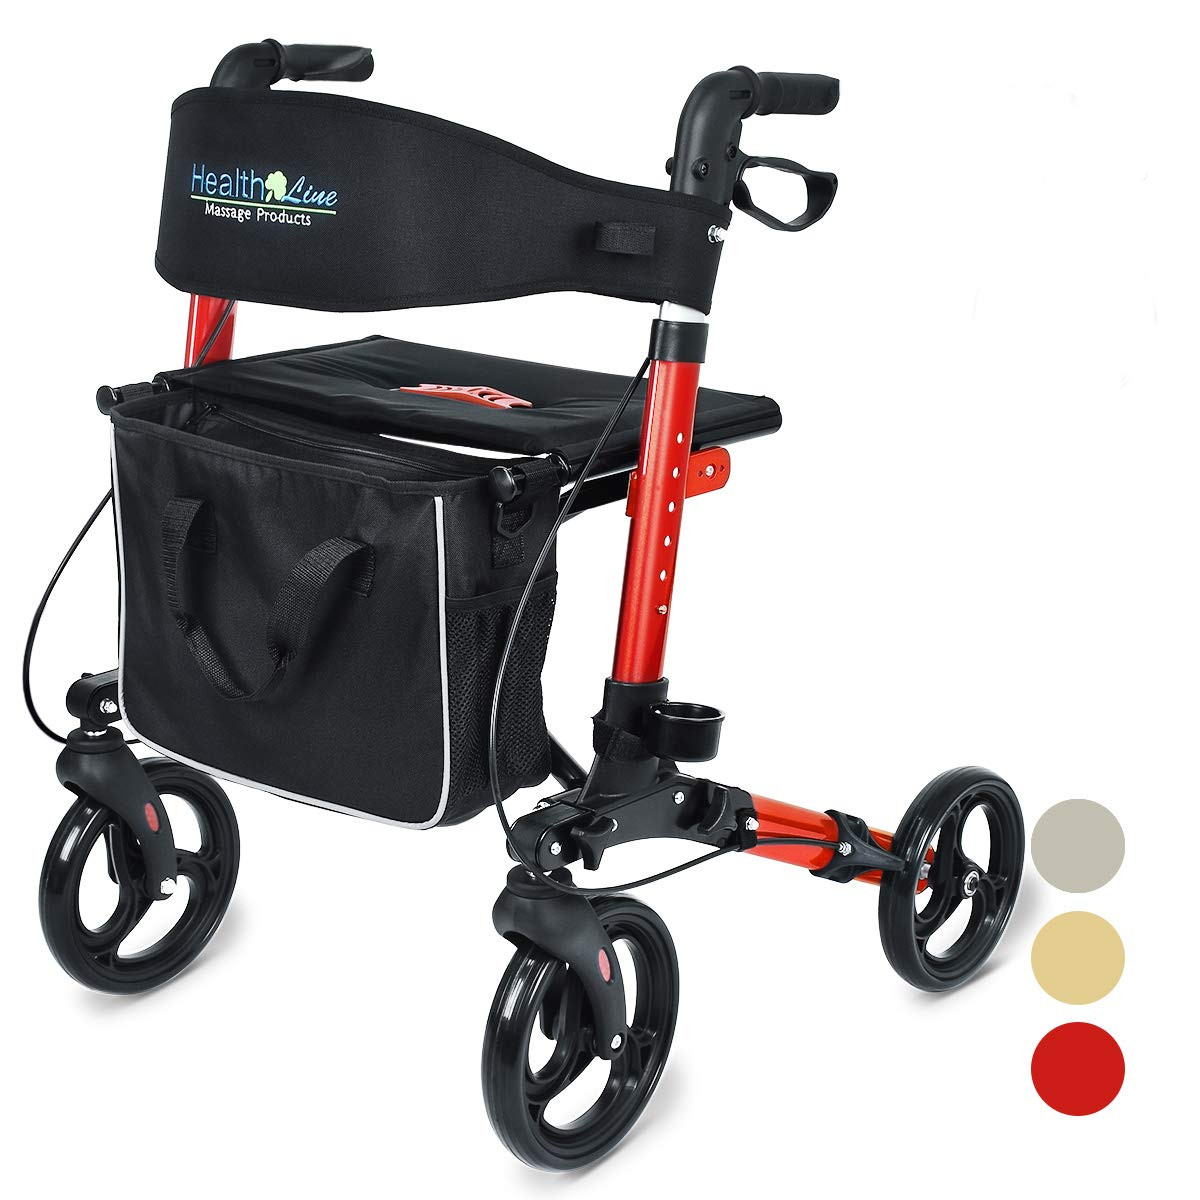 Health Line Compact Rollator for Seniors, Aluminum Side-Fold Rolling Walker with Paded Seat, Cherry Red by HEALTH LINE MASSAGE PRODUCTS